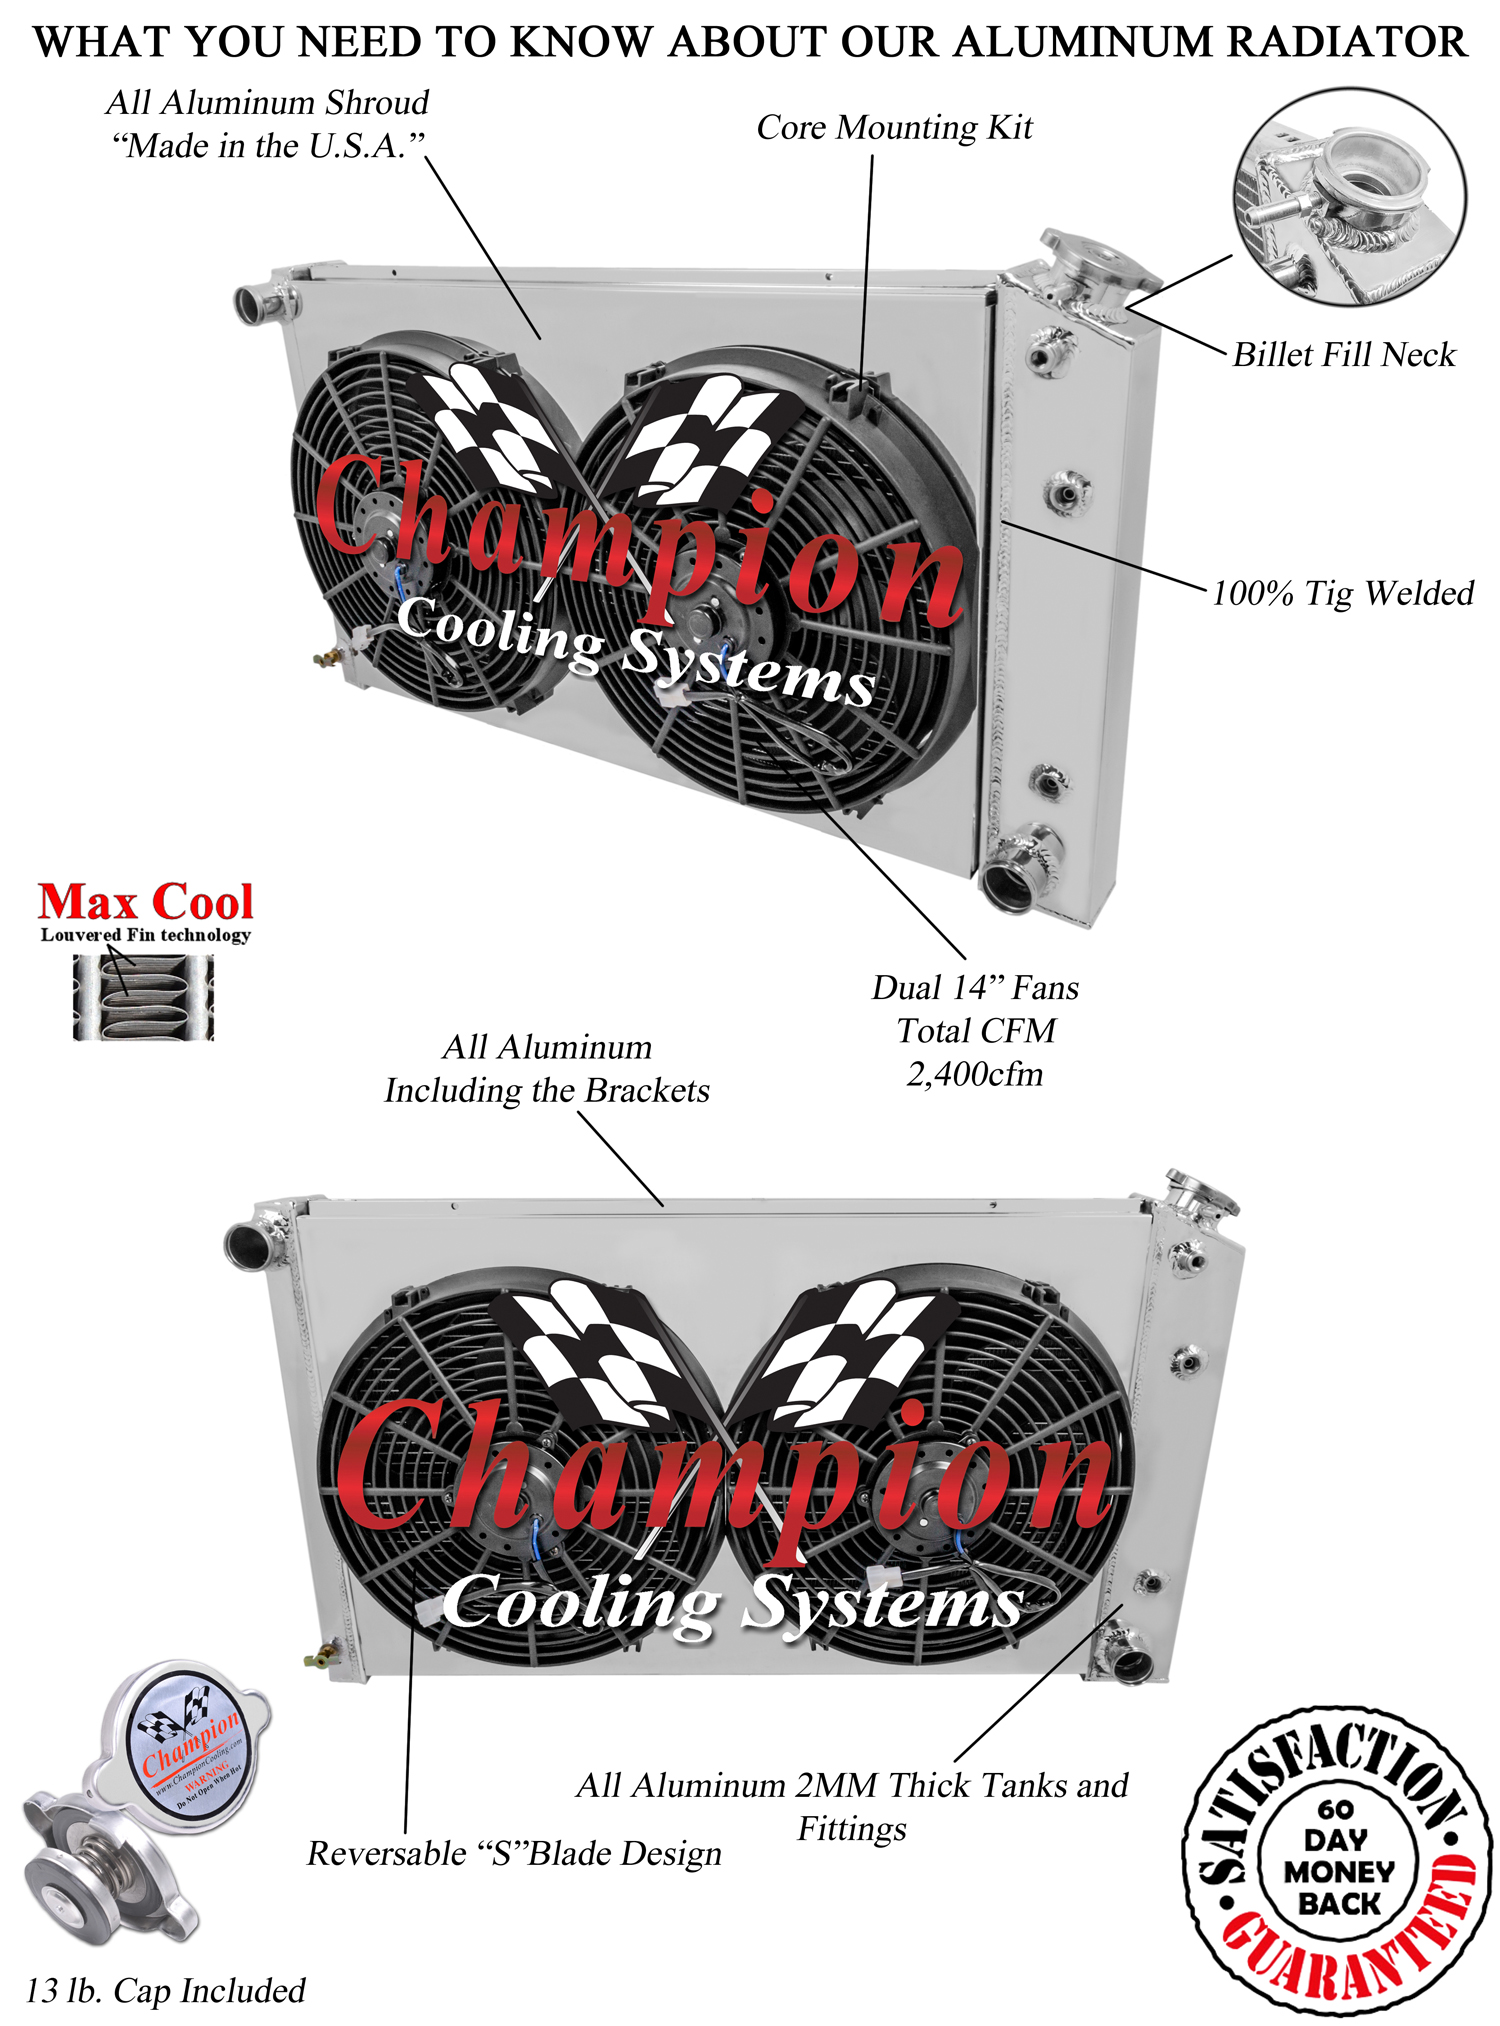 https://www.championcooling.com/photos/Photos%20White/With%20Fans/W-Shroud/161/161FSCombo_white_diagram_champion.jpg